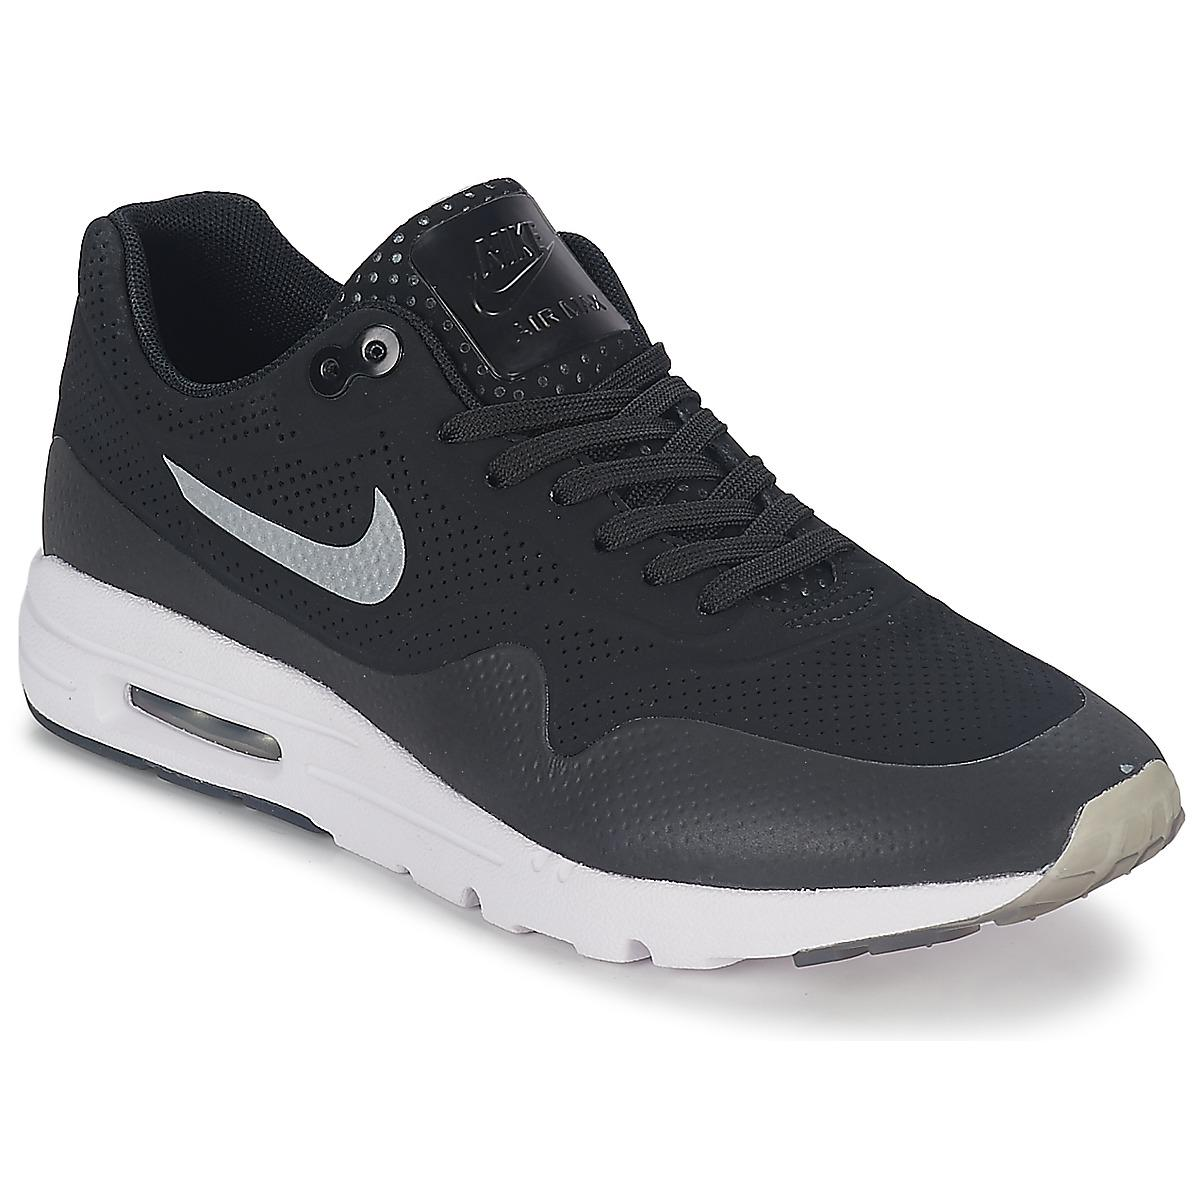 huge discount 47c6e d5c39 Nike - Air Max 1 Ultra Moire Women s Shoes (trainers) In Black - Lyst. View  fullscreen